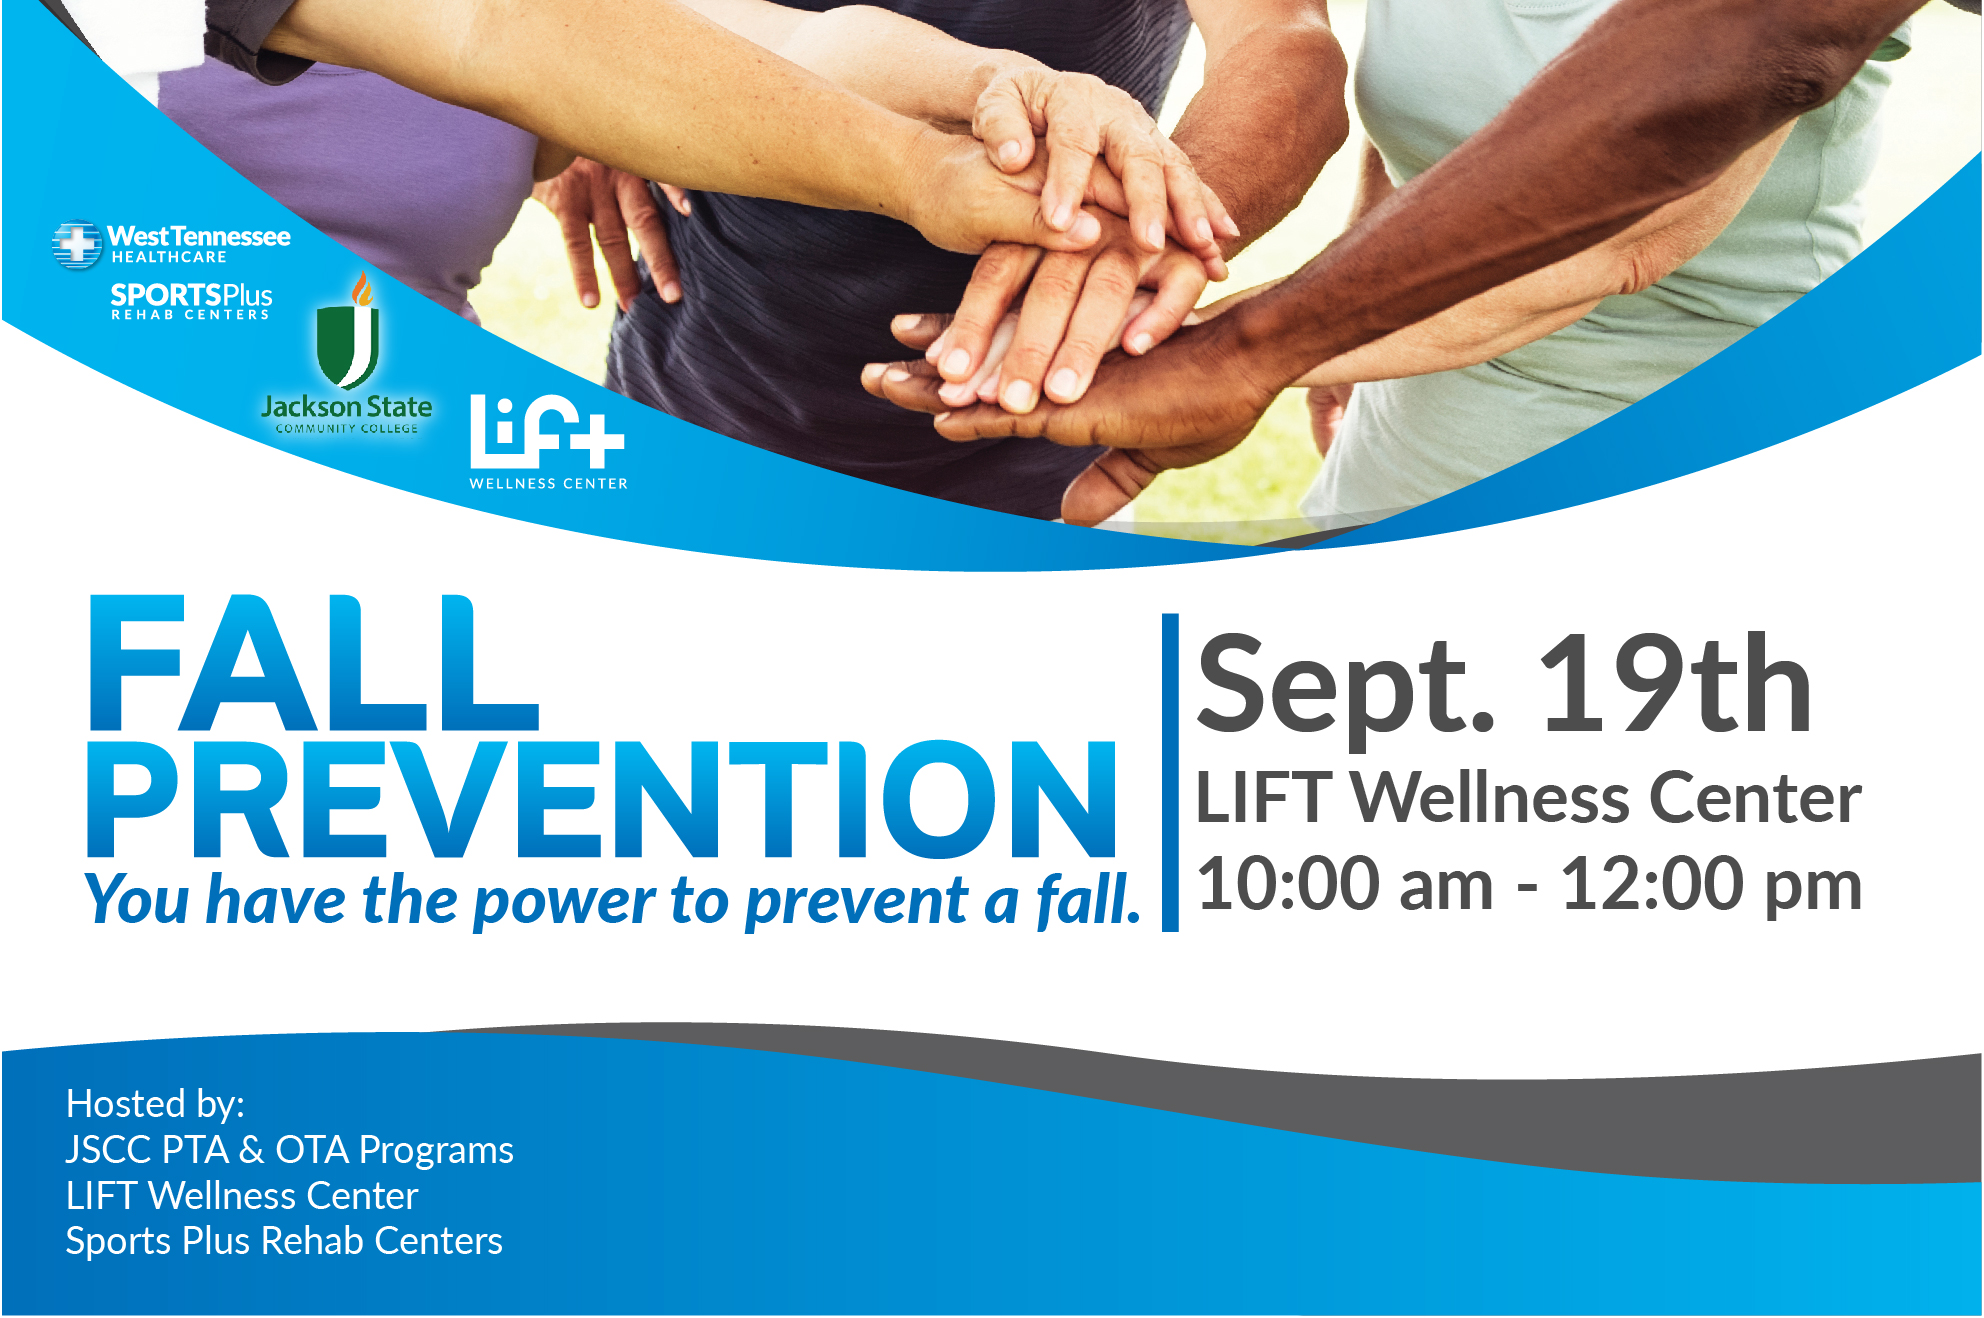 Fall Prevention Day